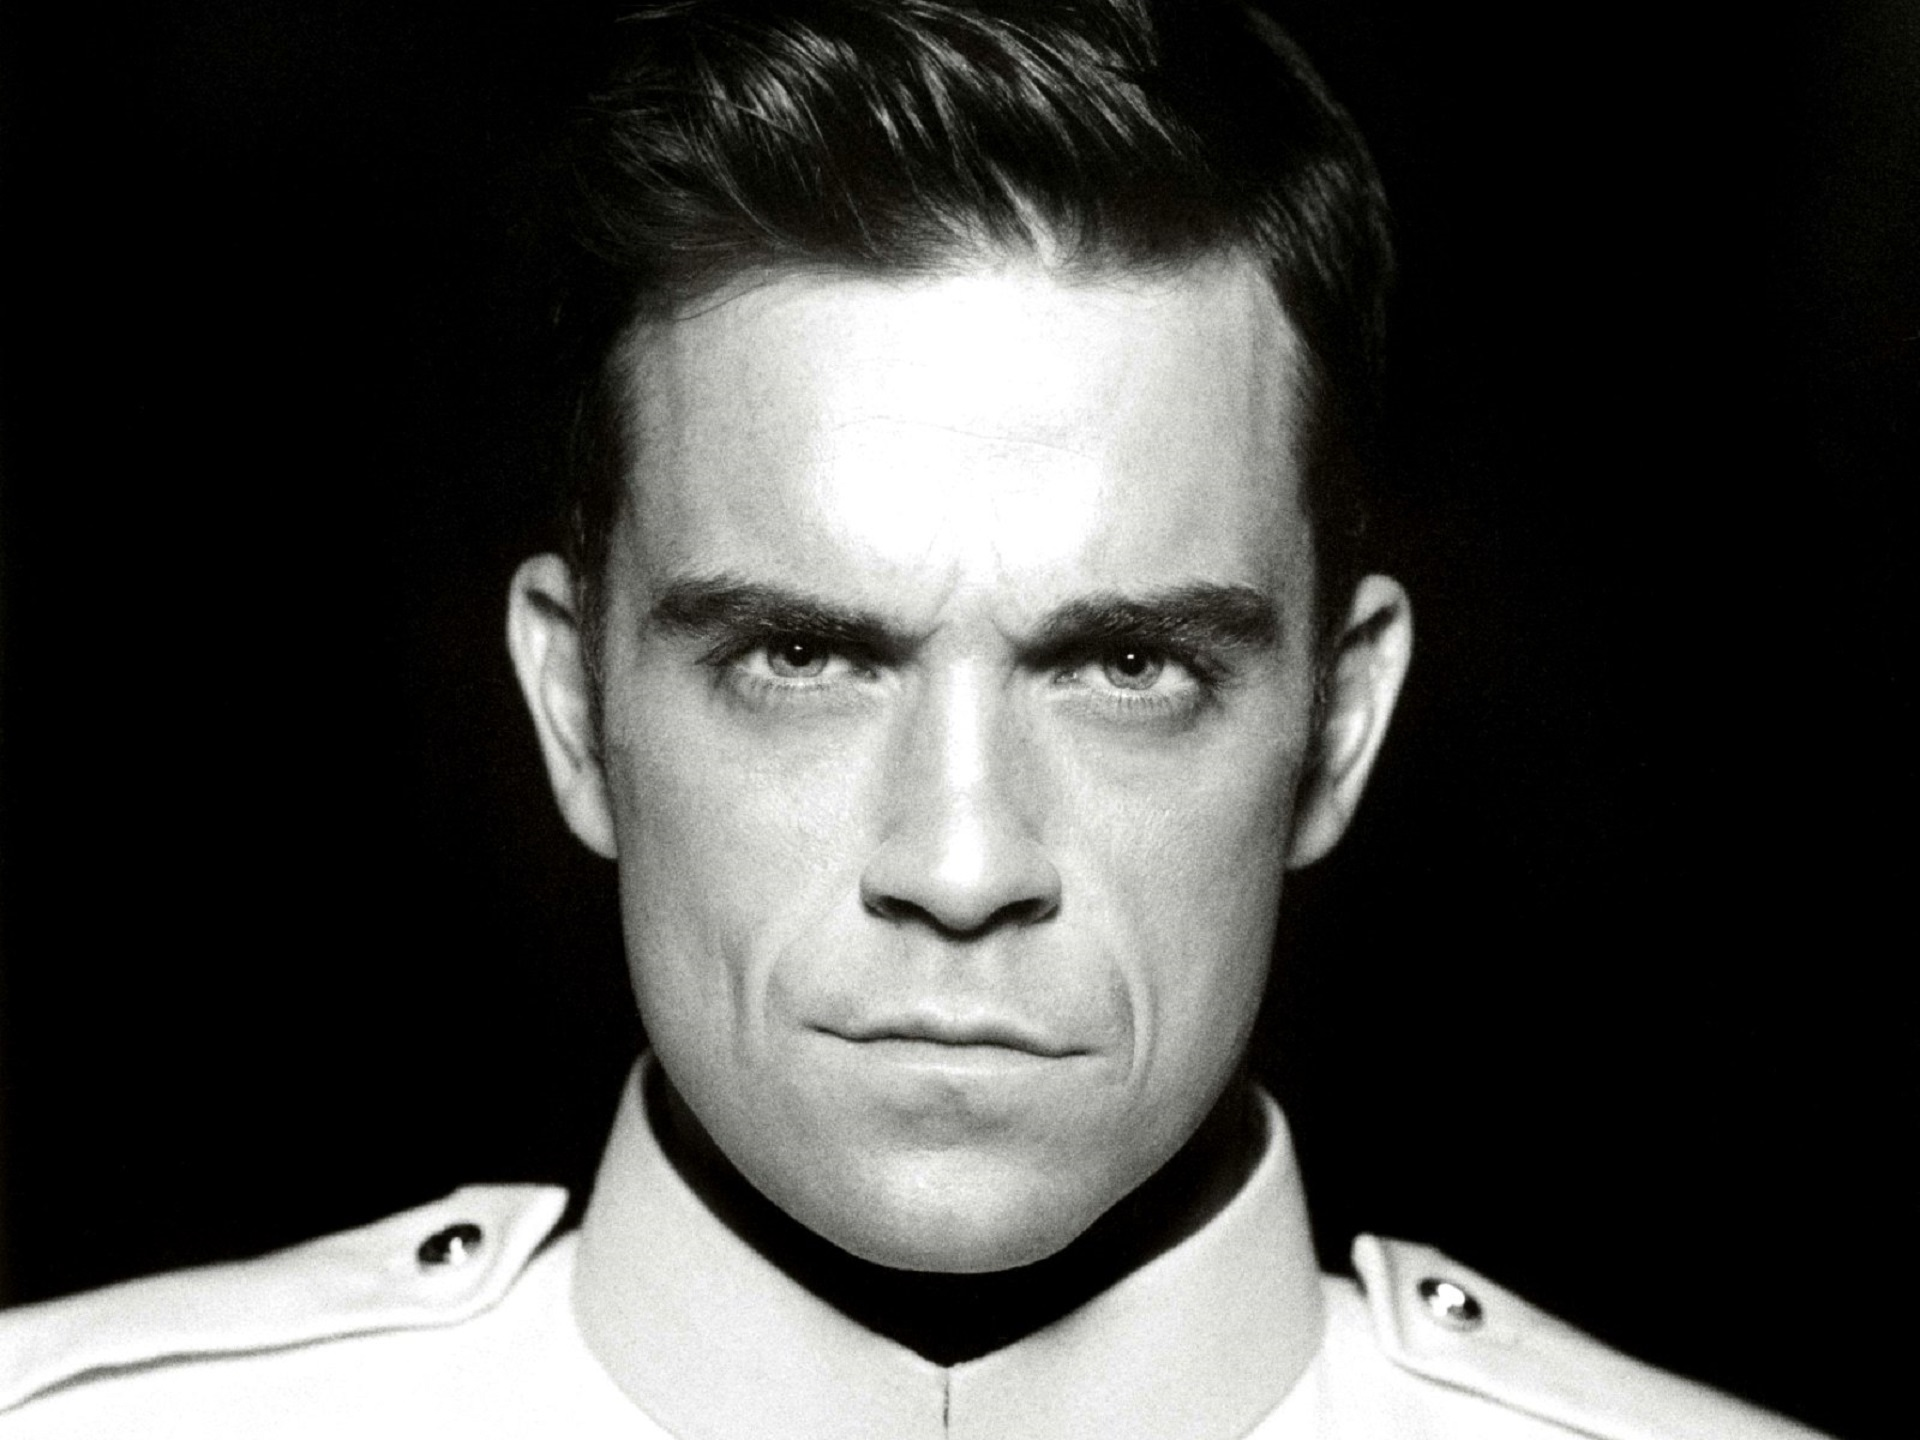 monochrome robbie williams wallpaper 60941